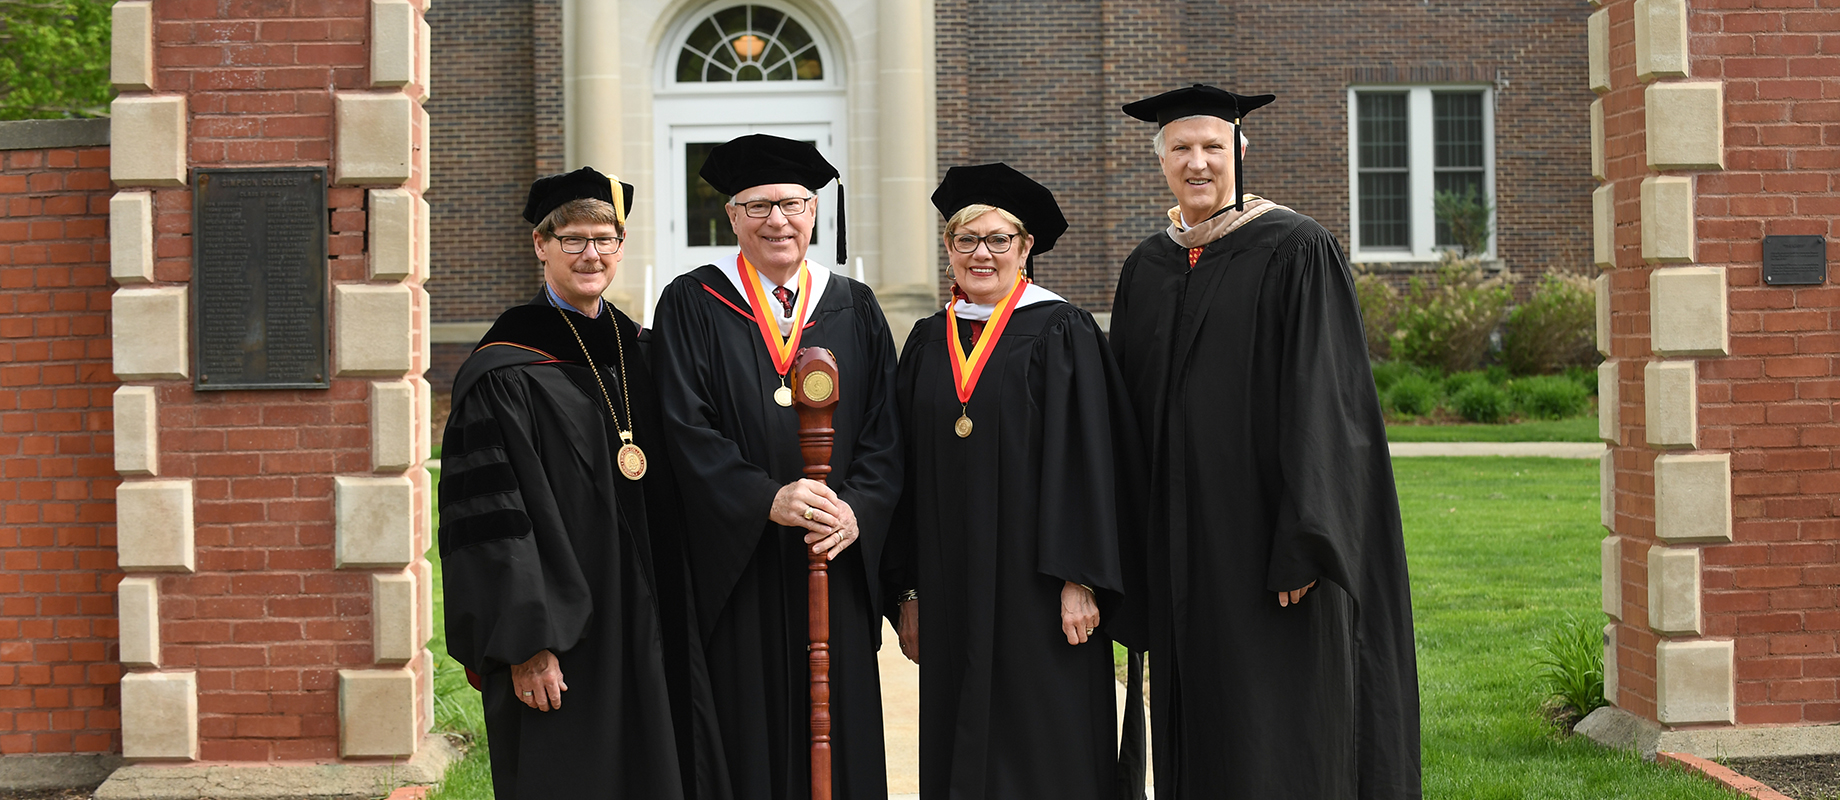 President Jay Simmons (left) poses with Honorary Grand Marshals Chuck '69 and Linda '69 Brice and Board of Trustees Chariman, Terrance Lillis '77.